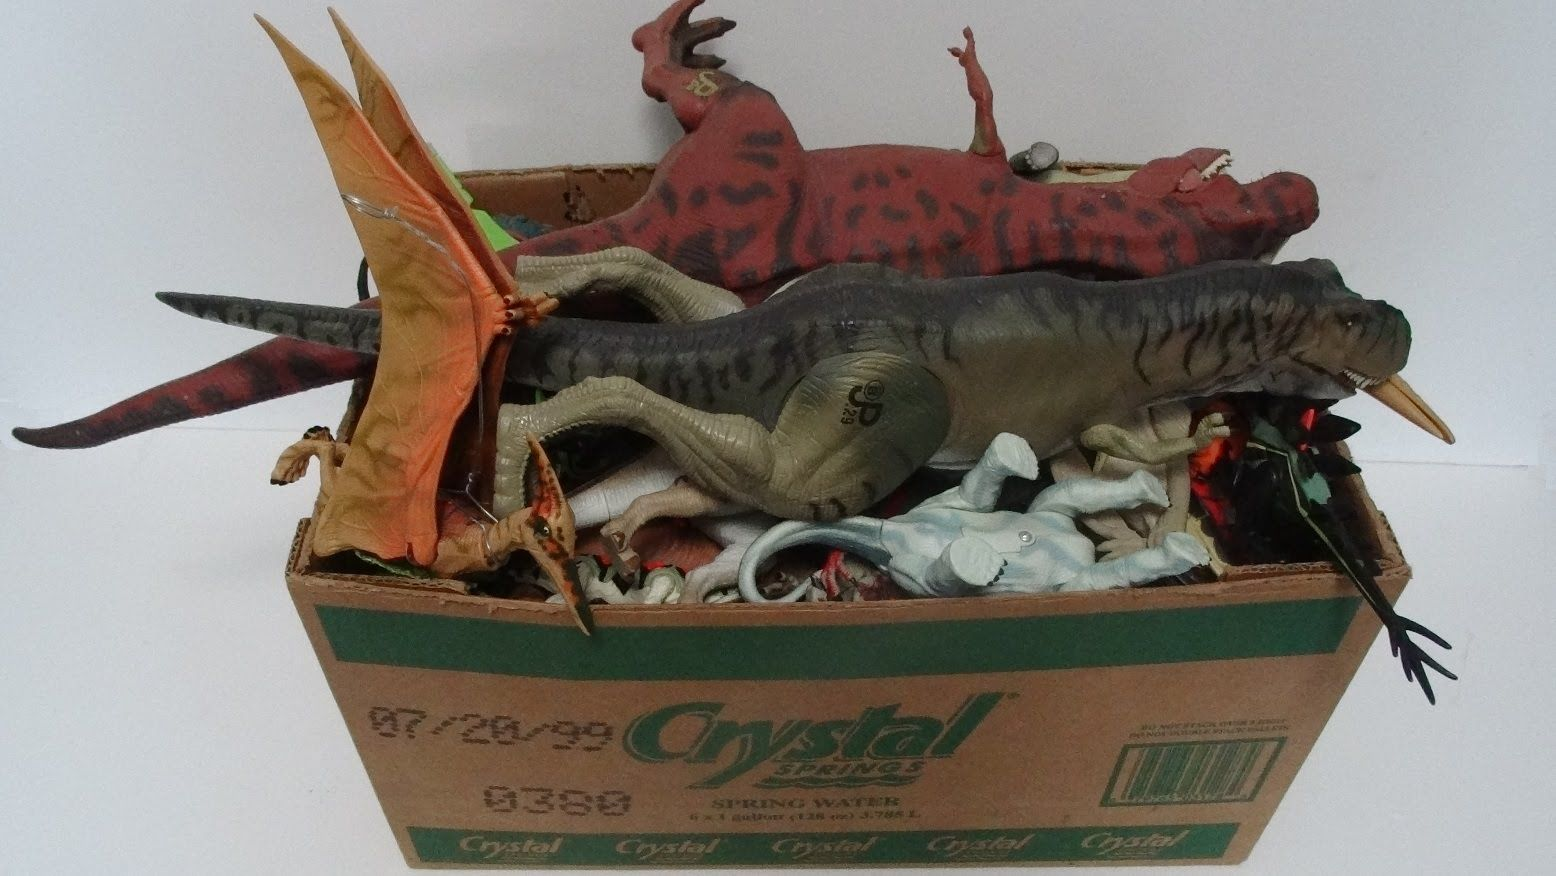 Dinosaurs Toys Collection : What s in the box jurassic park toys dinosaurs action